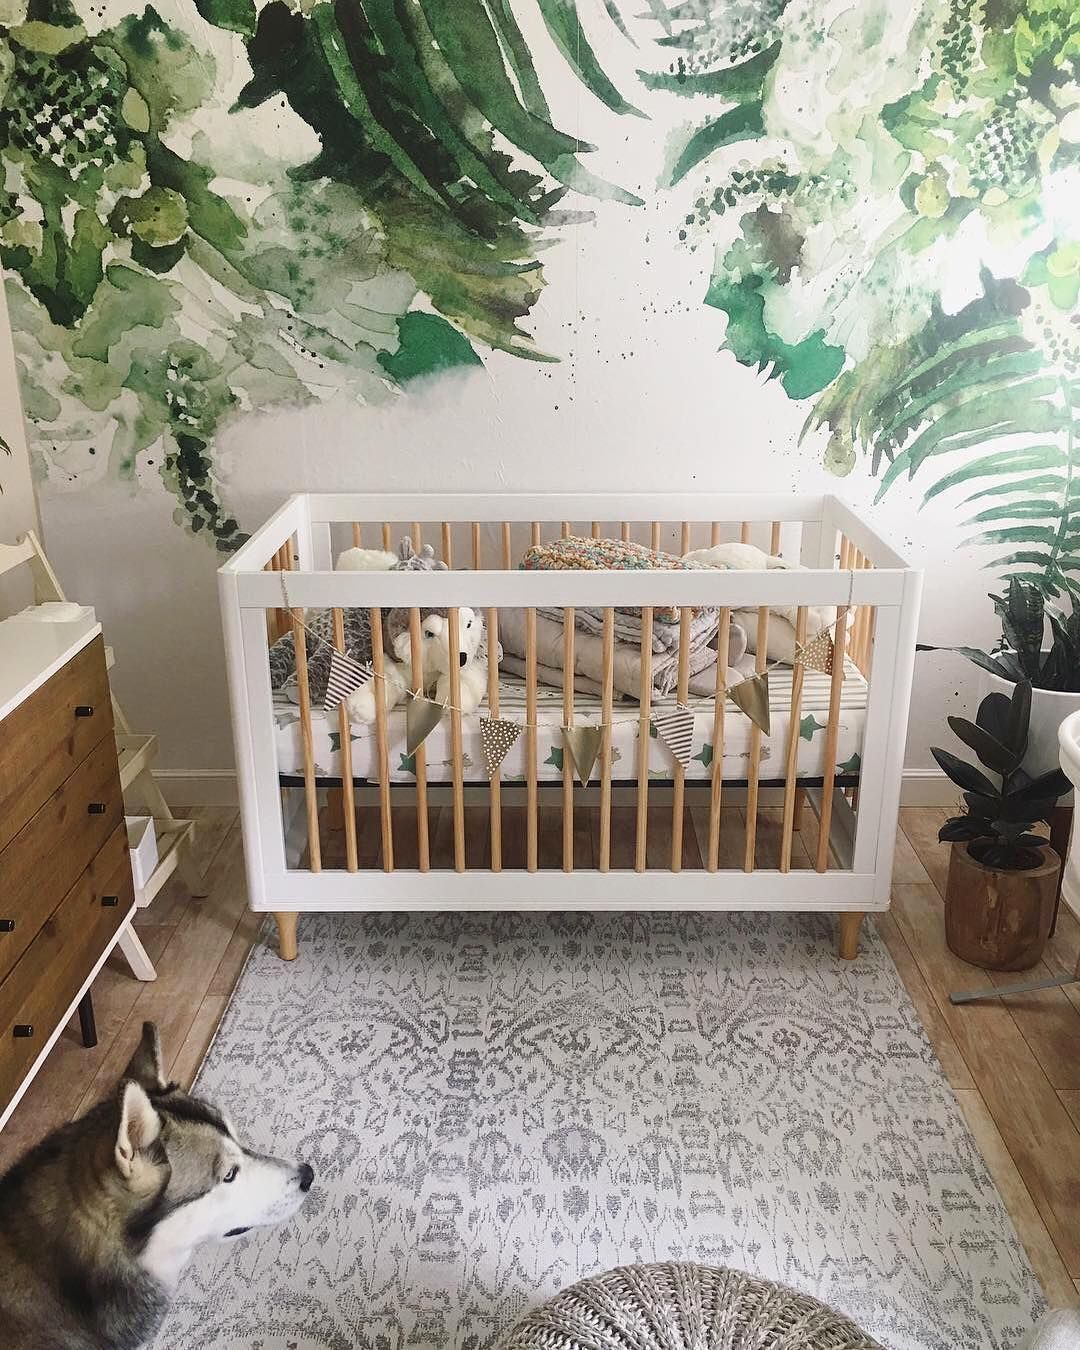 Babyletto on instagram major for this babes earthy space • babyletto lolly crib • designed by mama to be hullyeahwerevegan featuring her furbabe ✨